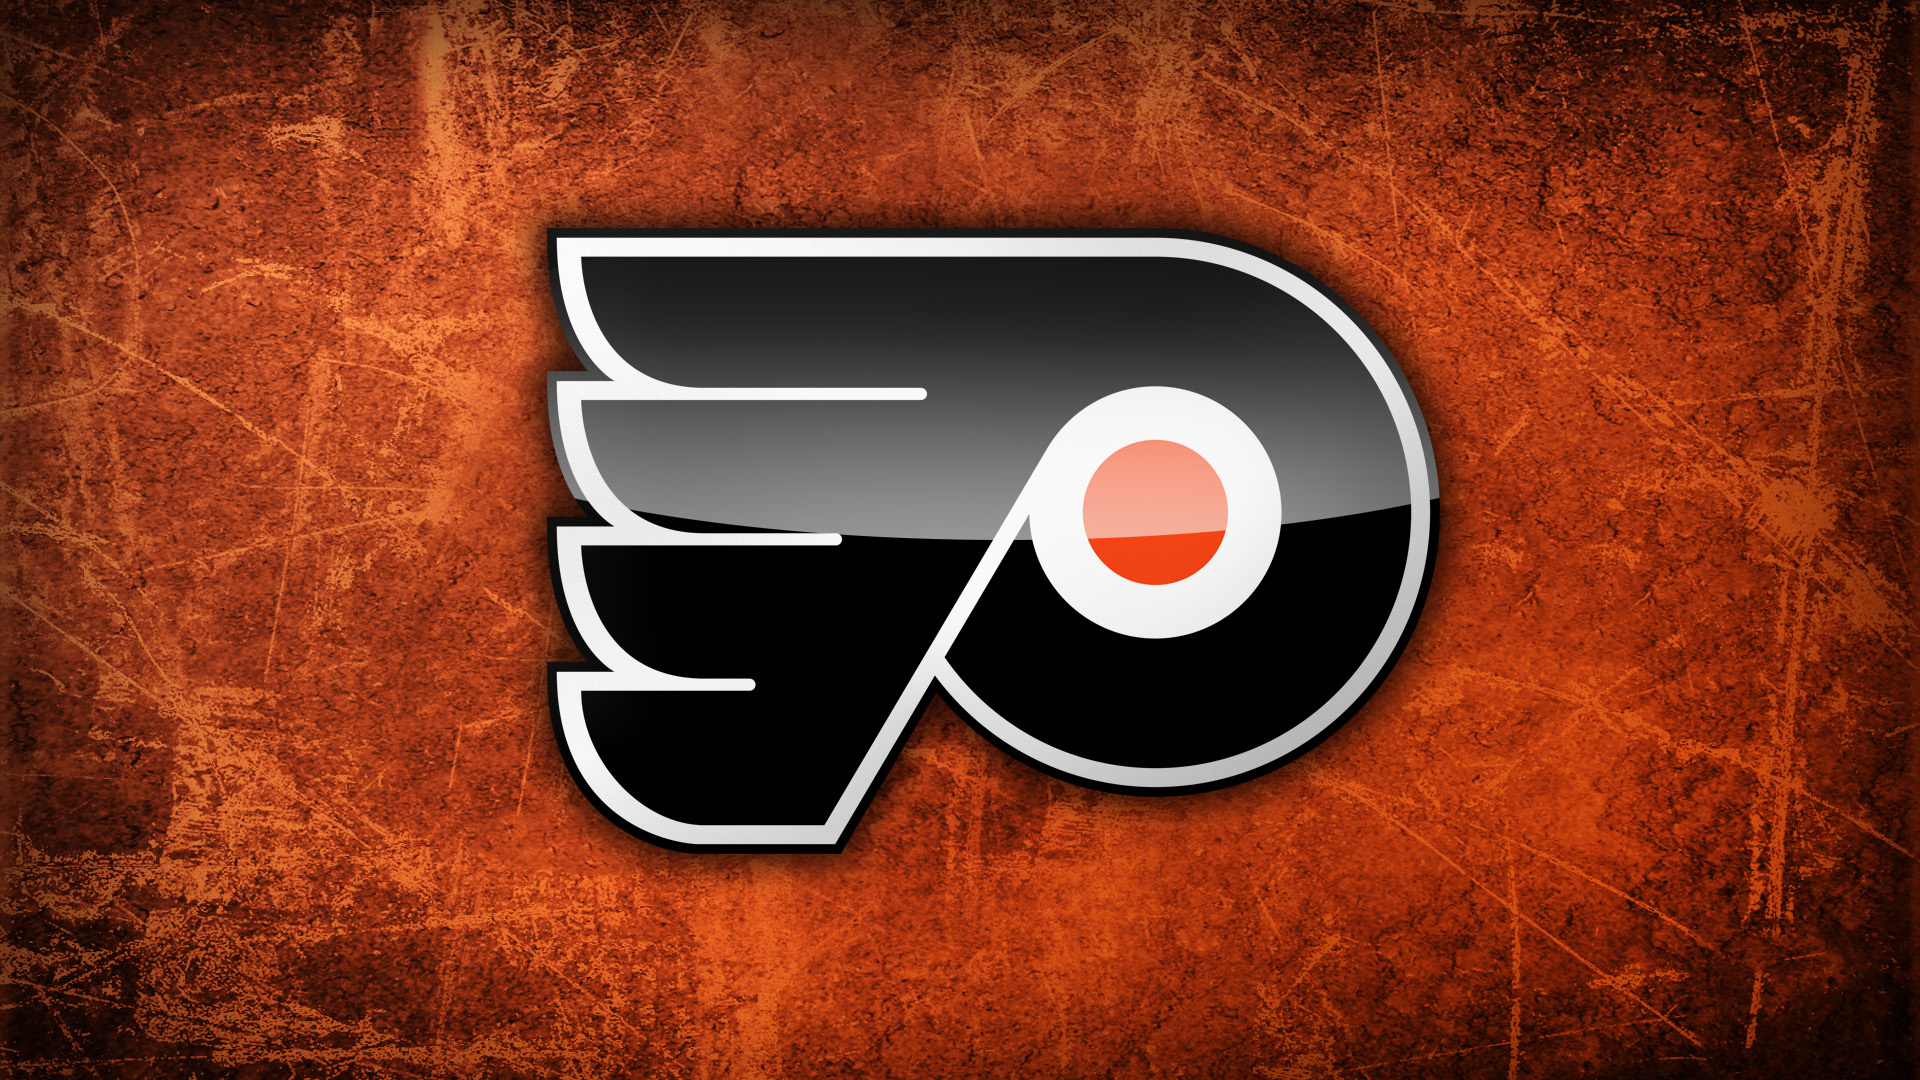 HD Wallpaper Of NHL Philadelphia Flyers